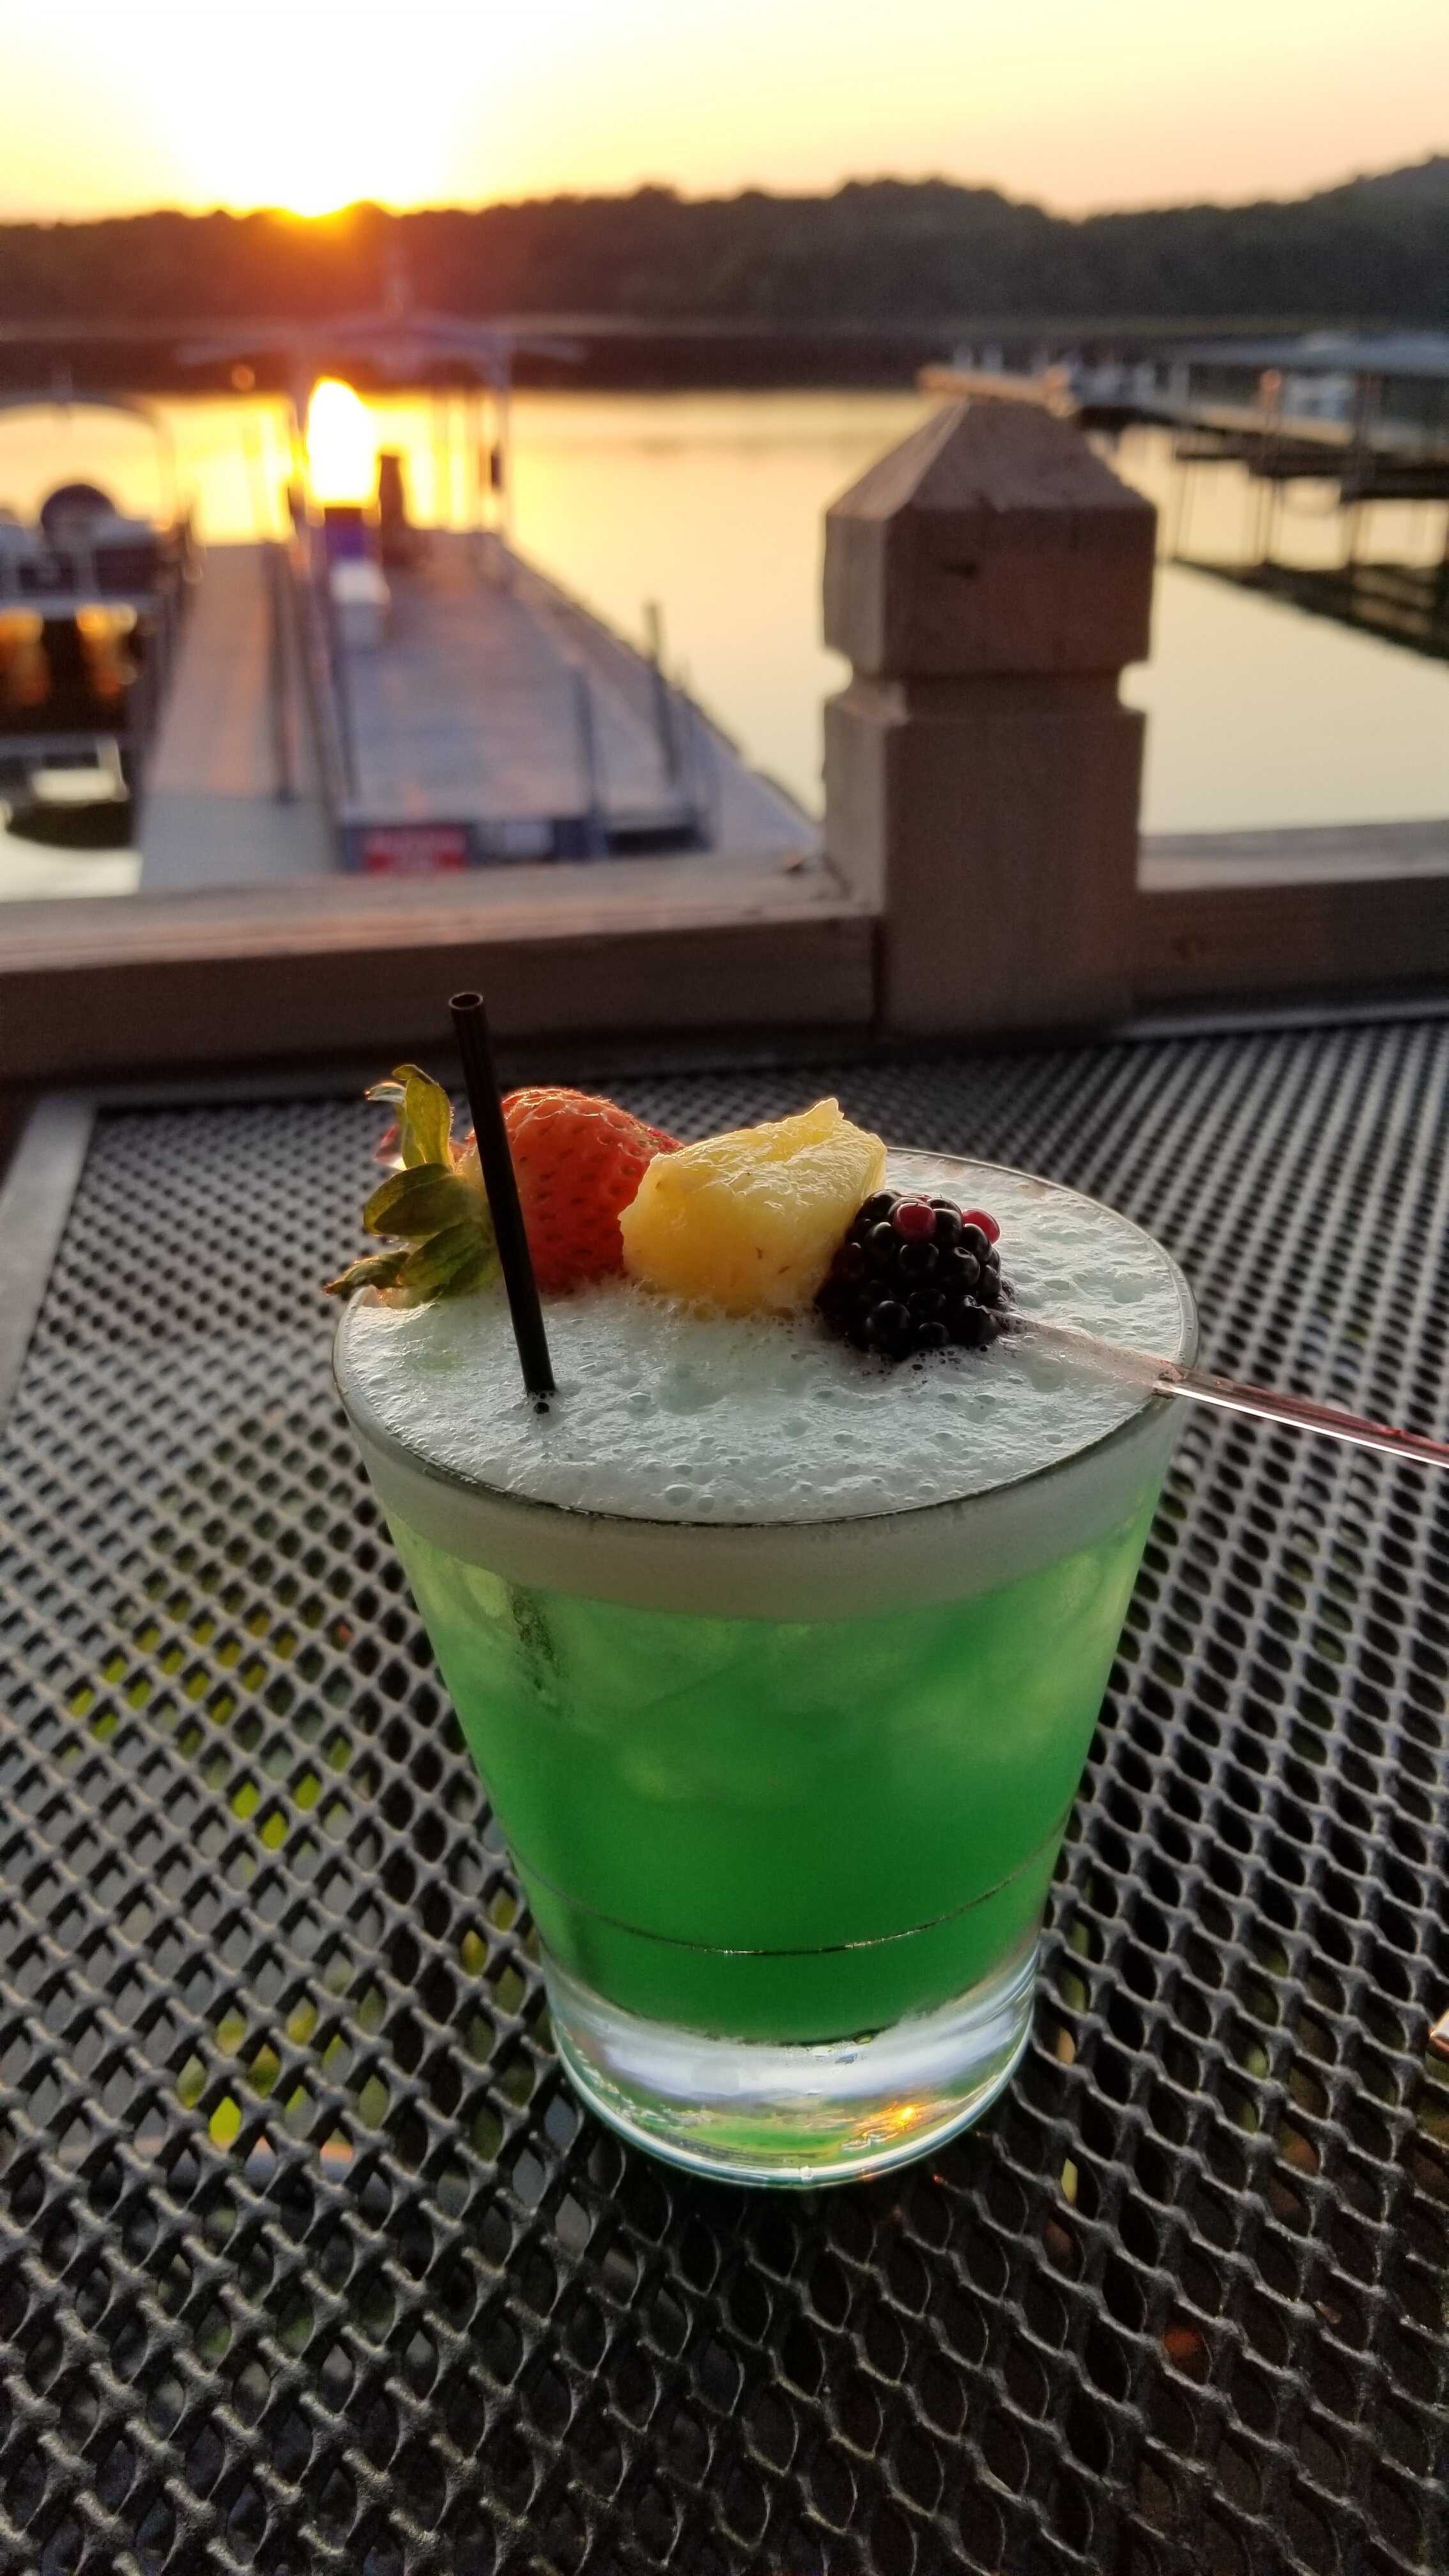 The Timberloft at Wildwood is the only place in Jackson County where you can order a cocktail.